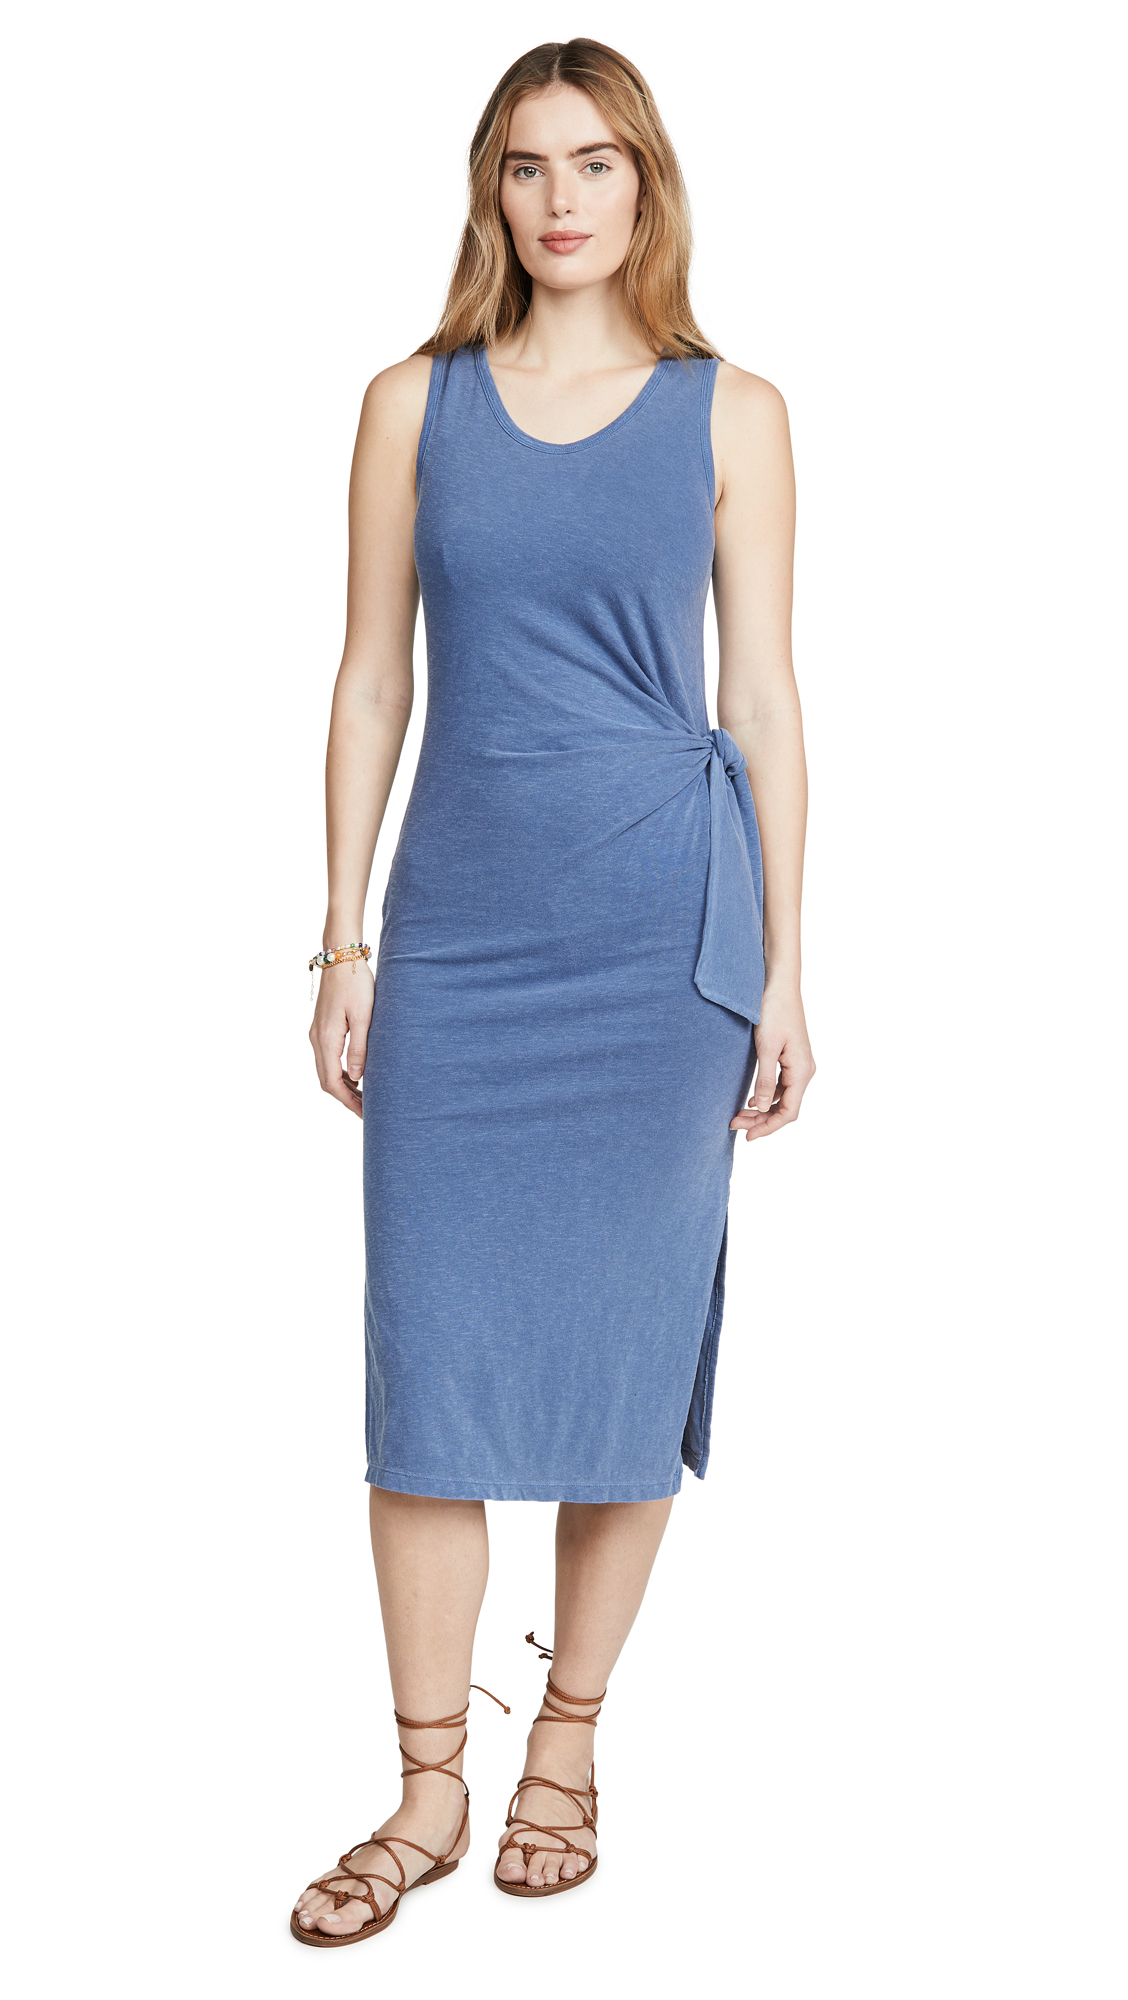 SUNDRY Knotted Dress - 30% Off Sale